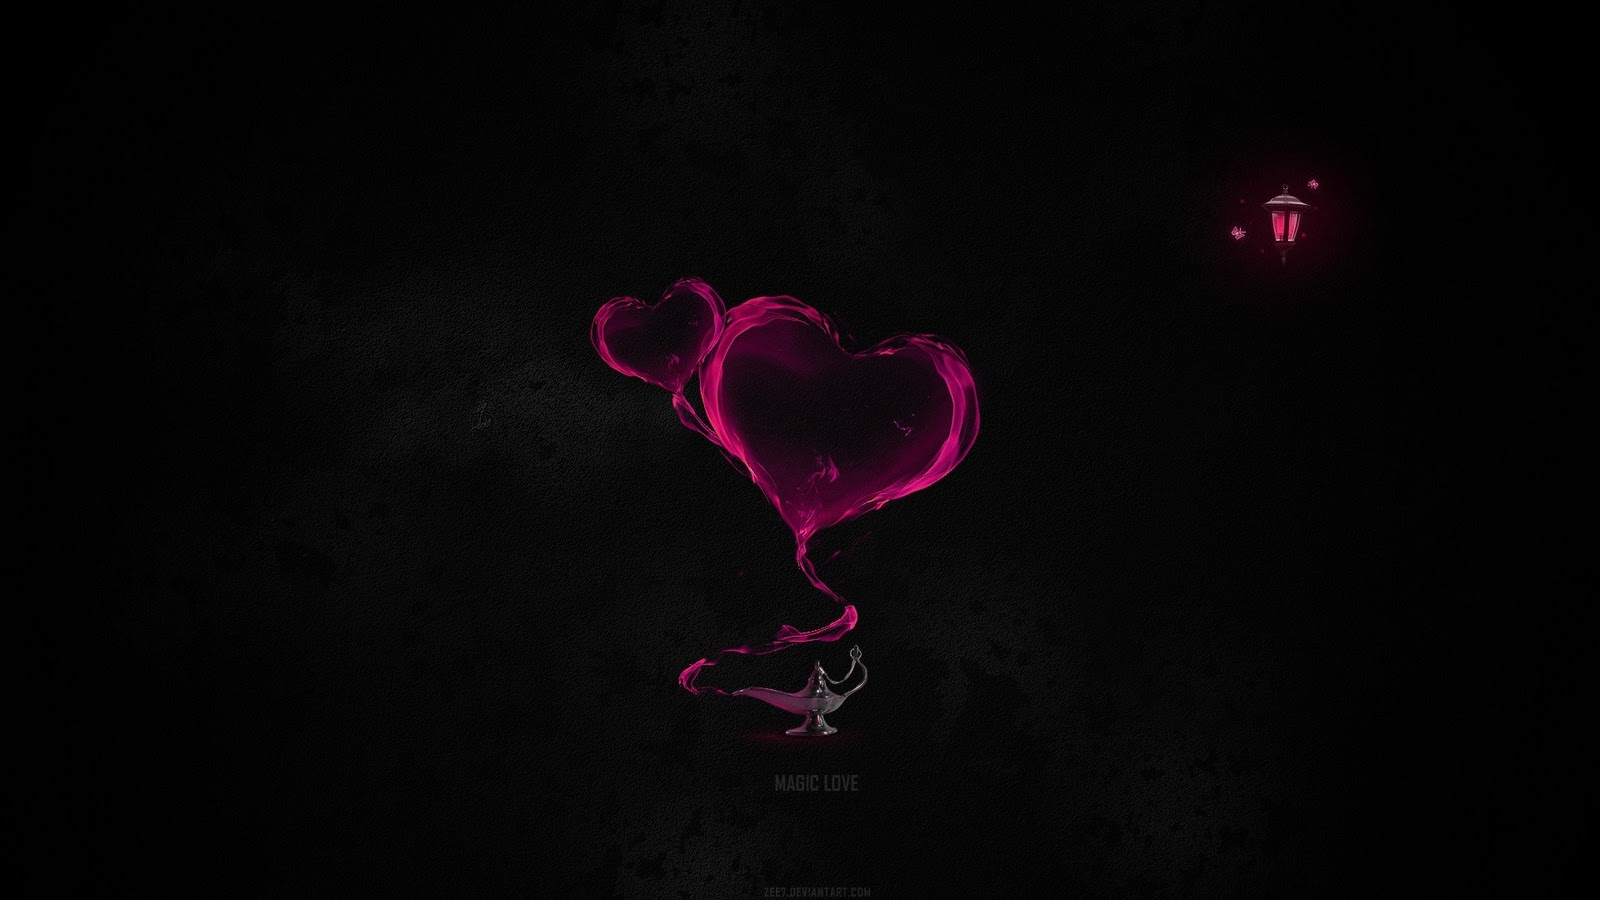 Love Wallpaper Backgrounds computer : Free 3D Wallpapers Download: Love hd wallpaper, love ...